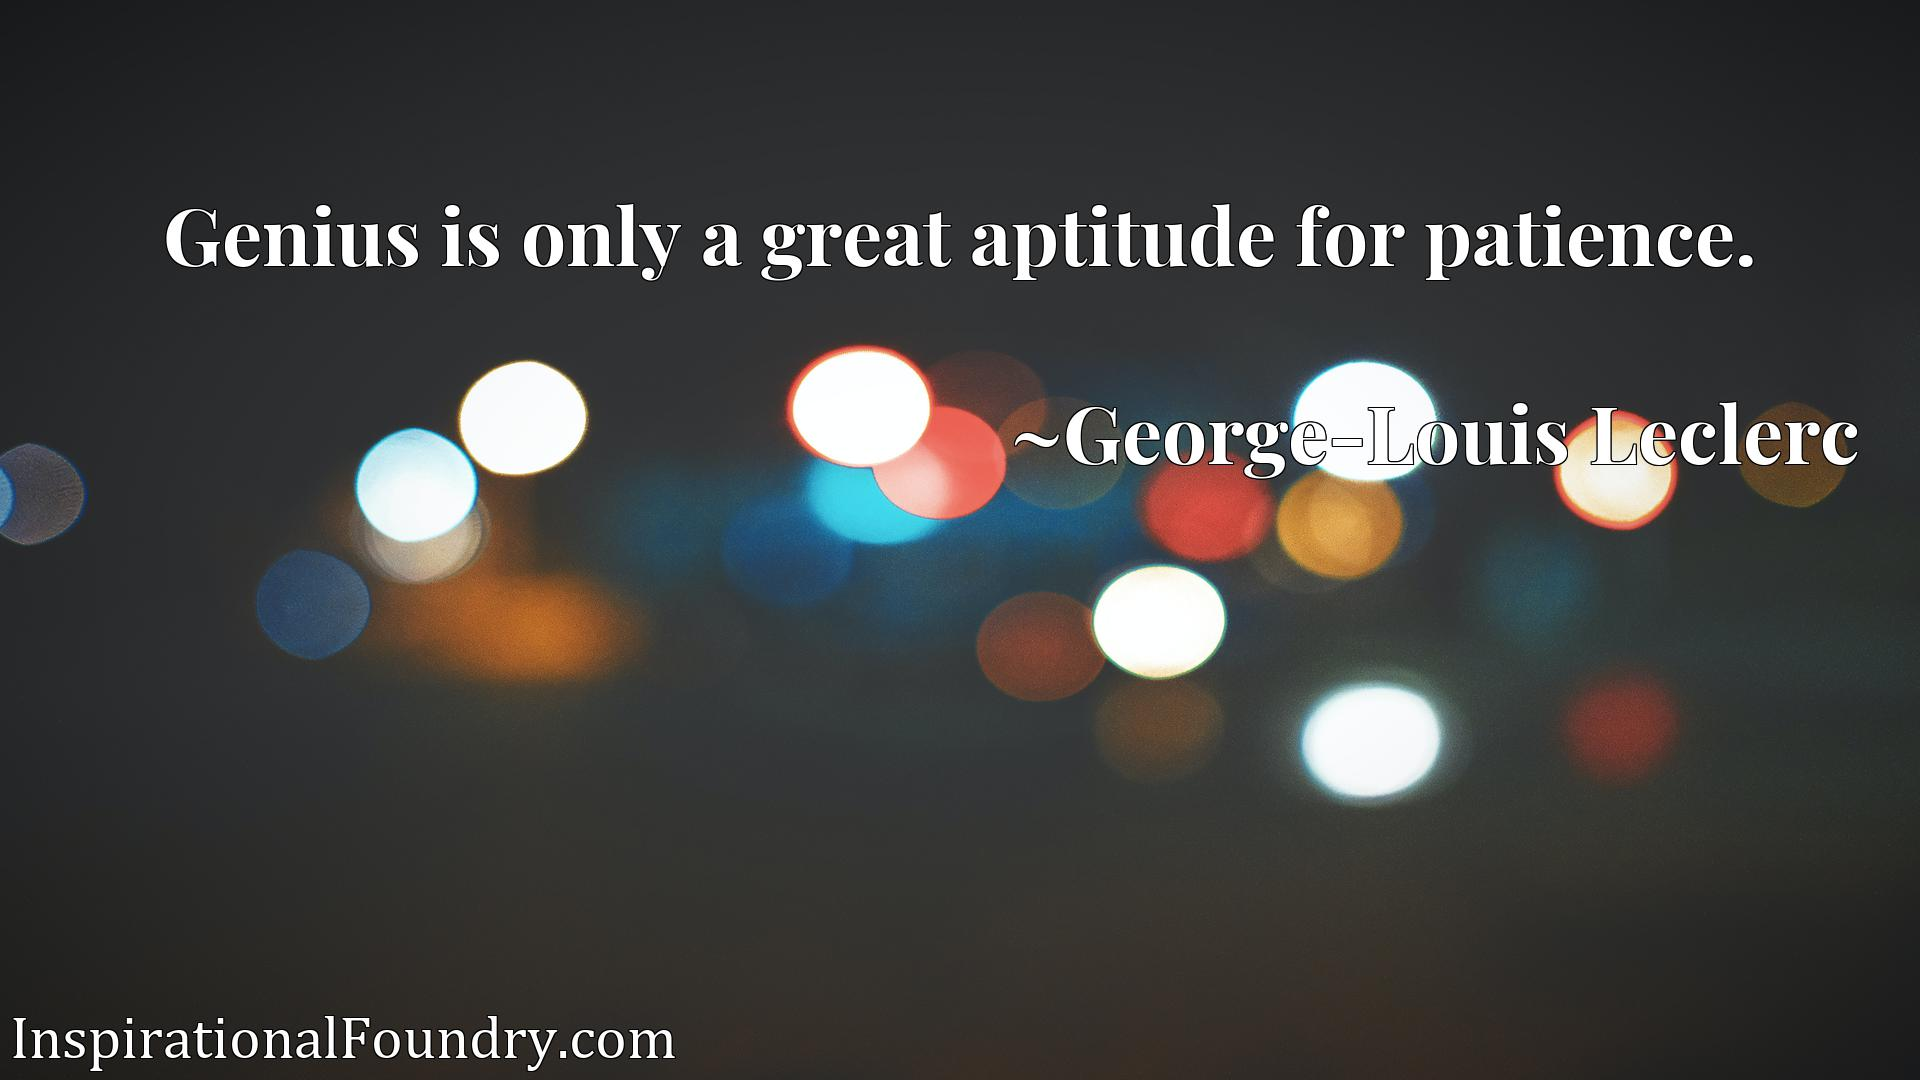 Genius is only a great aptitude for patience.